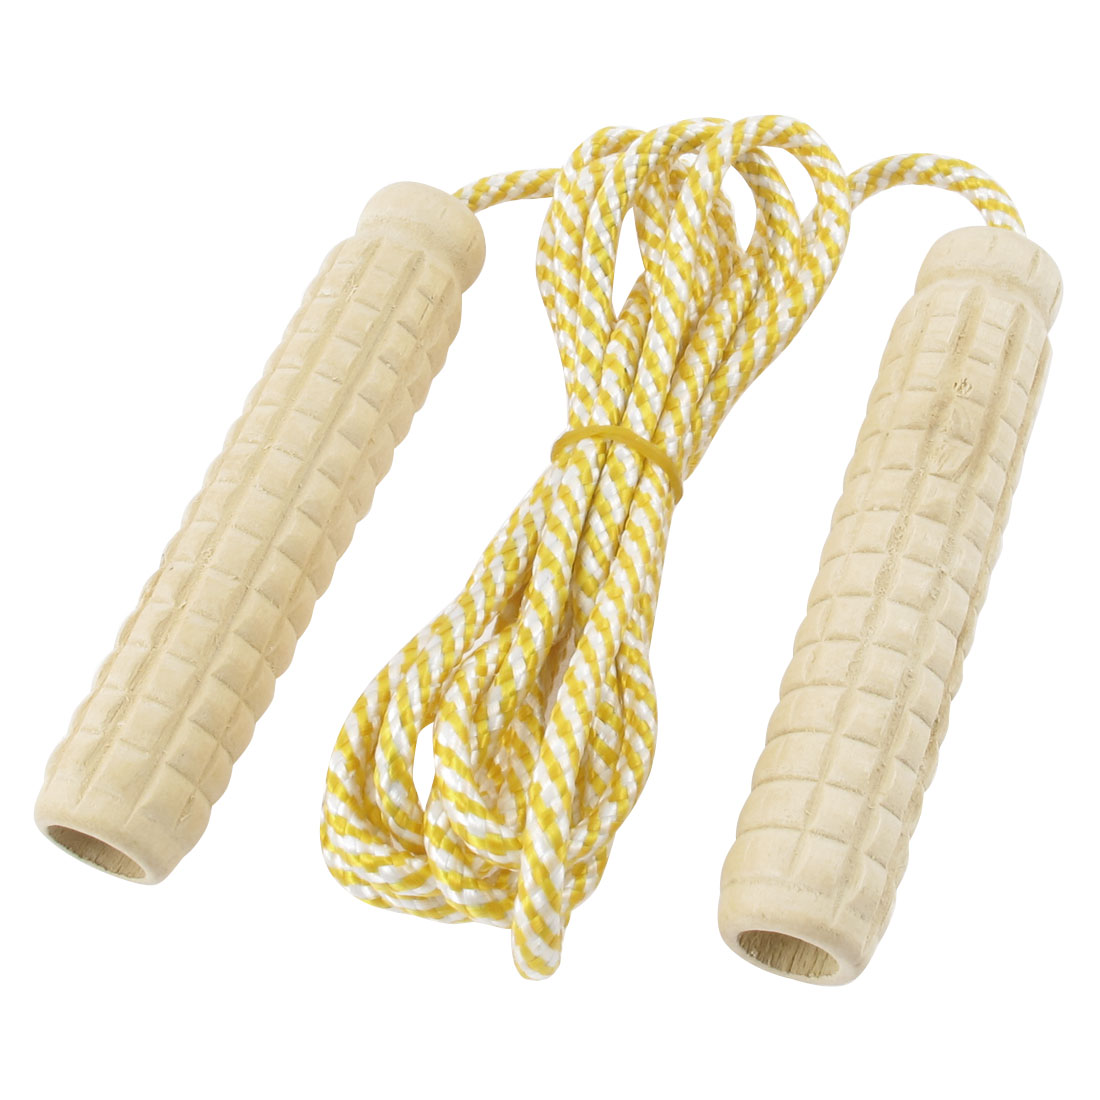 Yellow Nylon Stripe String Plastic Grip Jump Fitness Exercise Skipping Rope